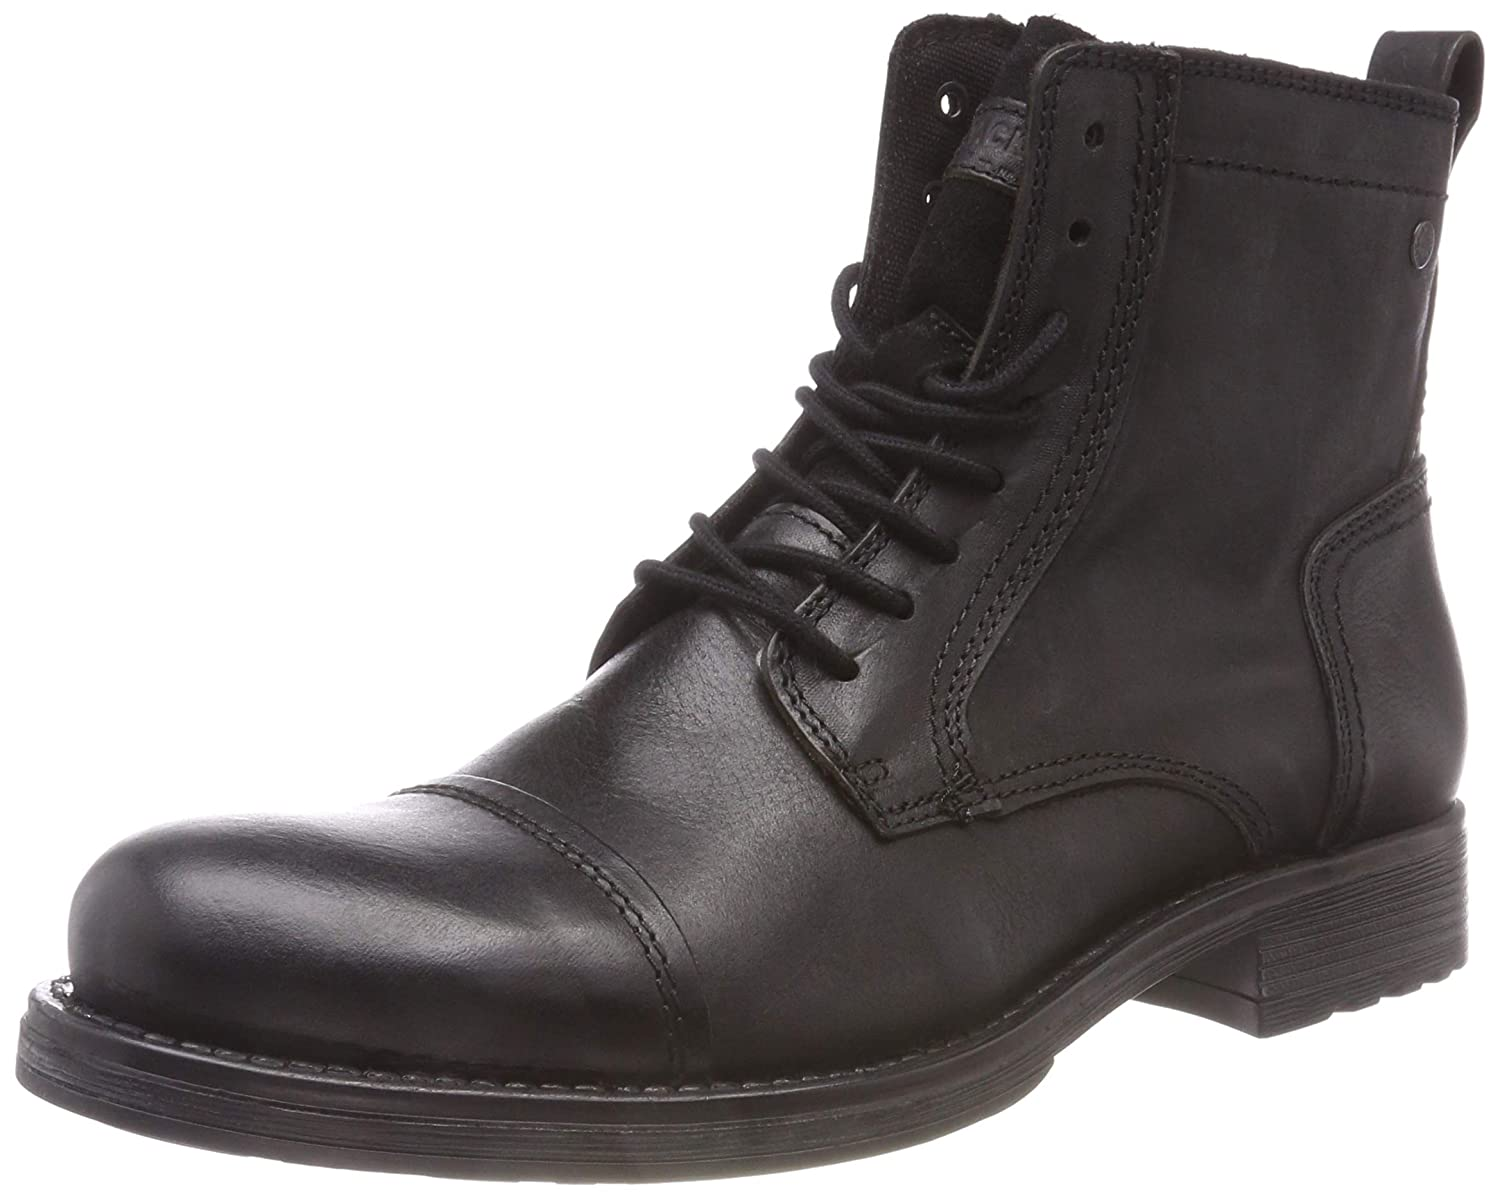 Jack & Jones Jfwrussel Leather Anthracite Pre, Botas Clasicas para Hombre